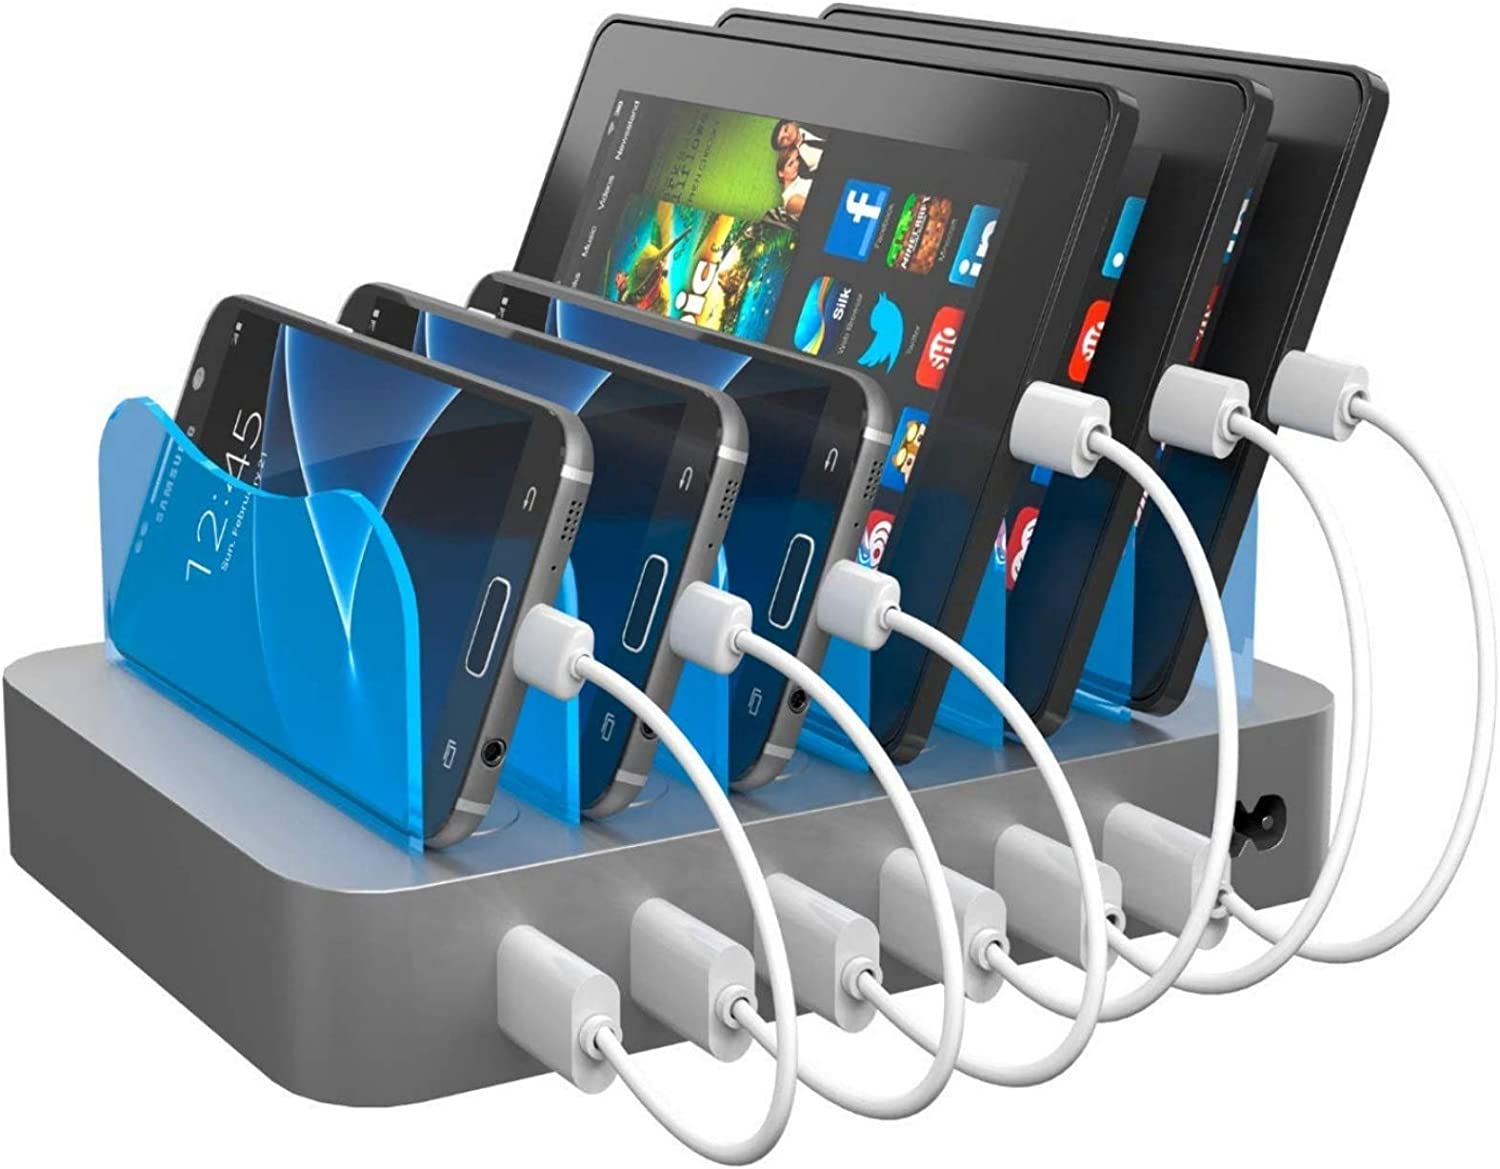 Hercules Tuff Phone Charging Station - Multi Device Organizer - Works for Galaxy S6/S7/S8/S9, Note 6/7/8/9 and More - Micro USB and Type C Cables Included